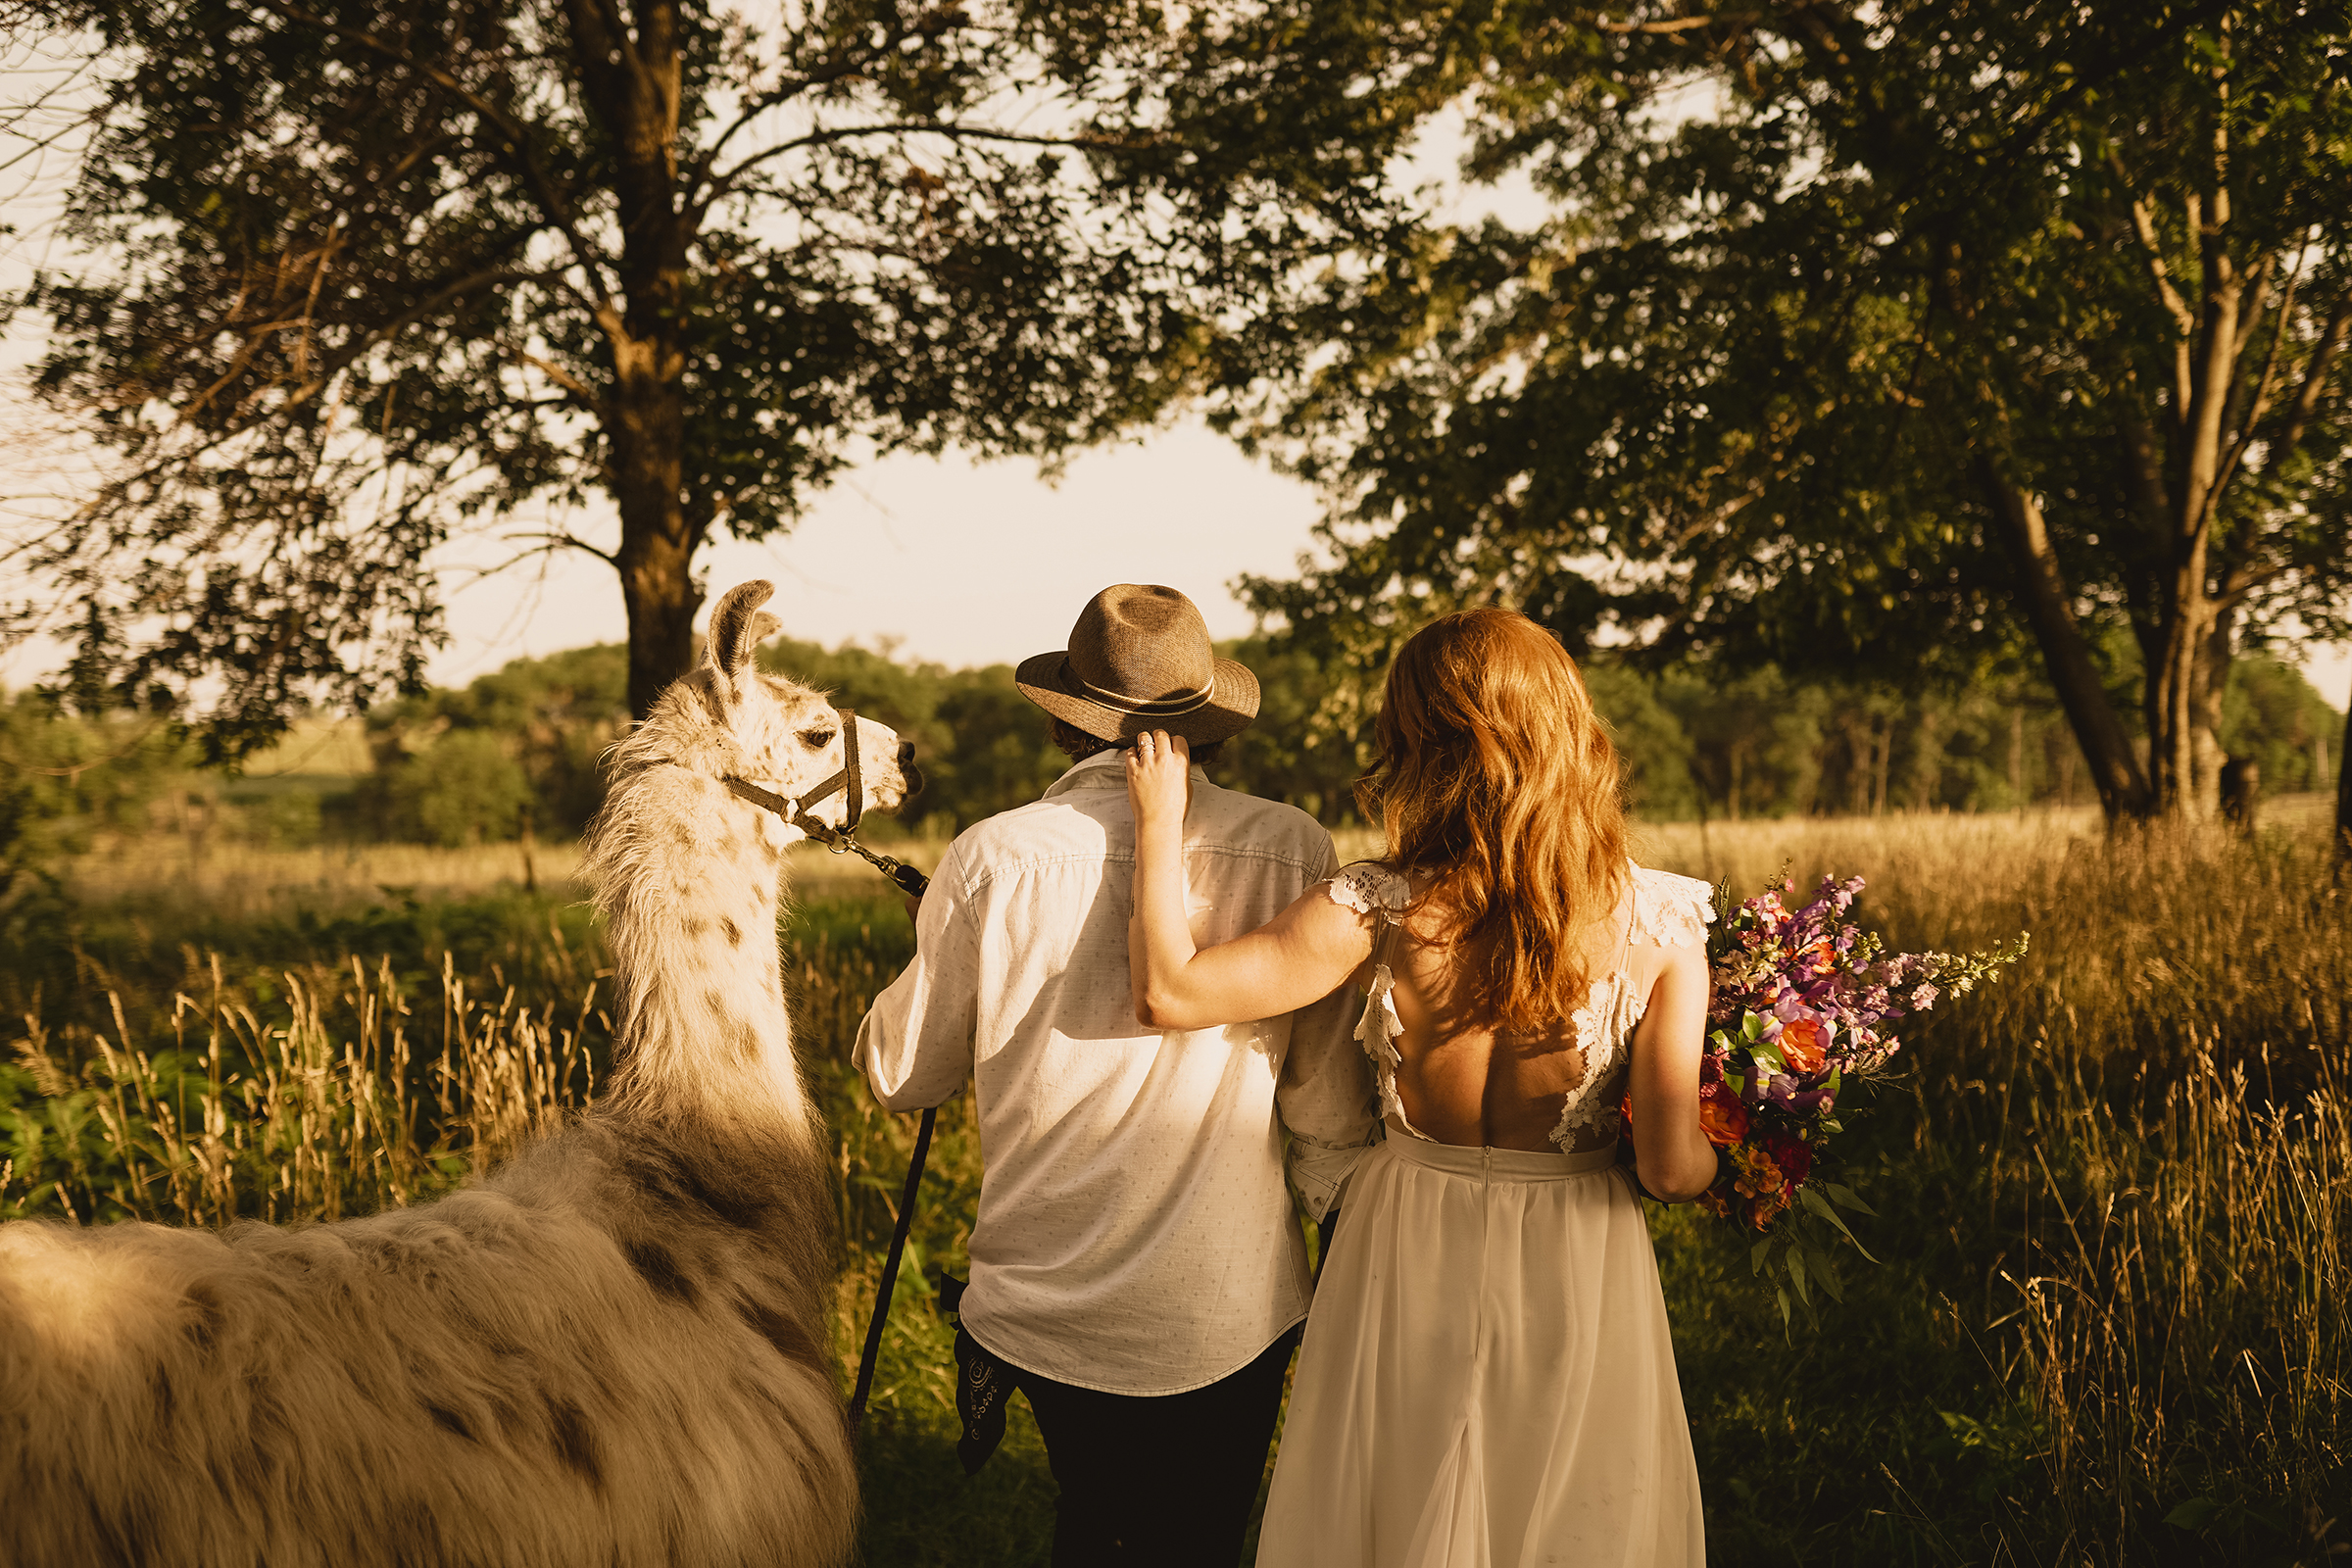 bride-groom-walking-away-with-llama-myrtle-mae-iris-aisle-dame-maiden-lavender-blue-floral-raelyn-ramey-photography.jpg